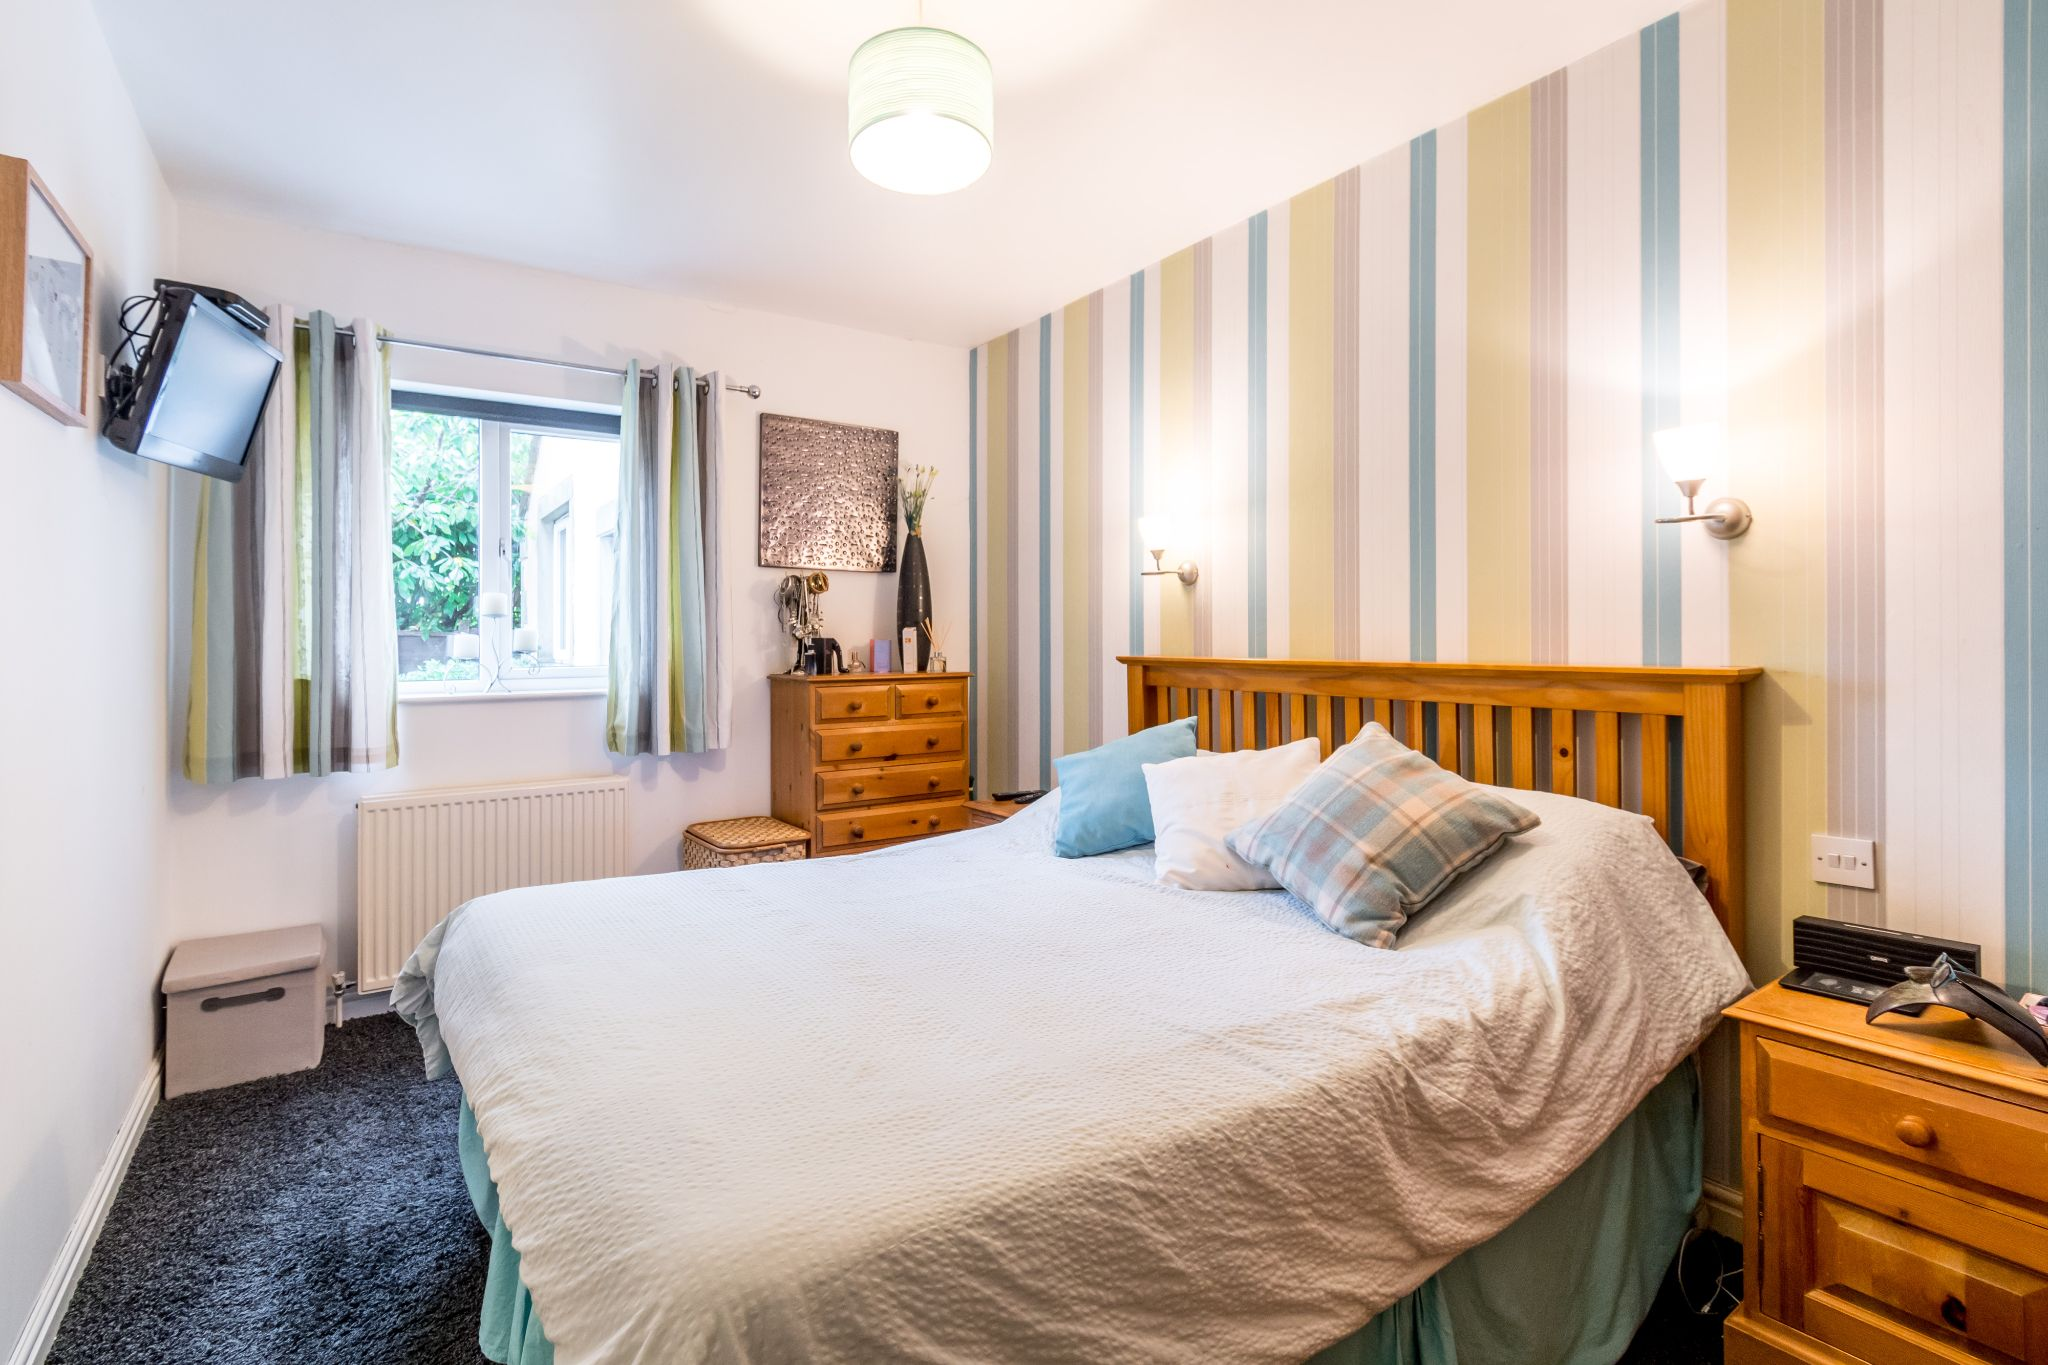 5 bedroom detached house SSTC in Brighouse - Master bedroom